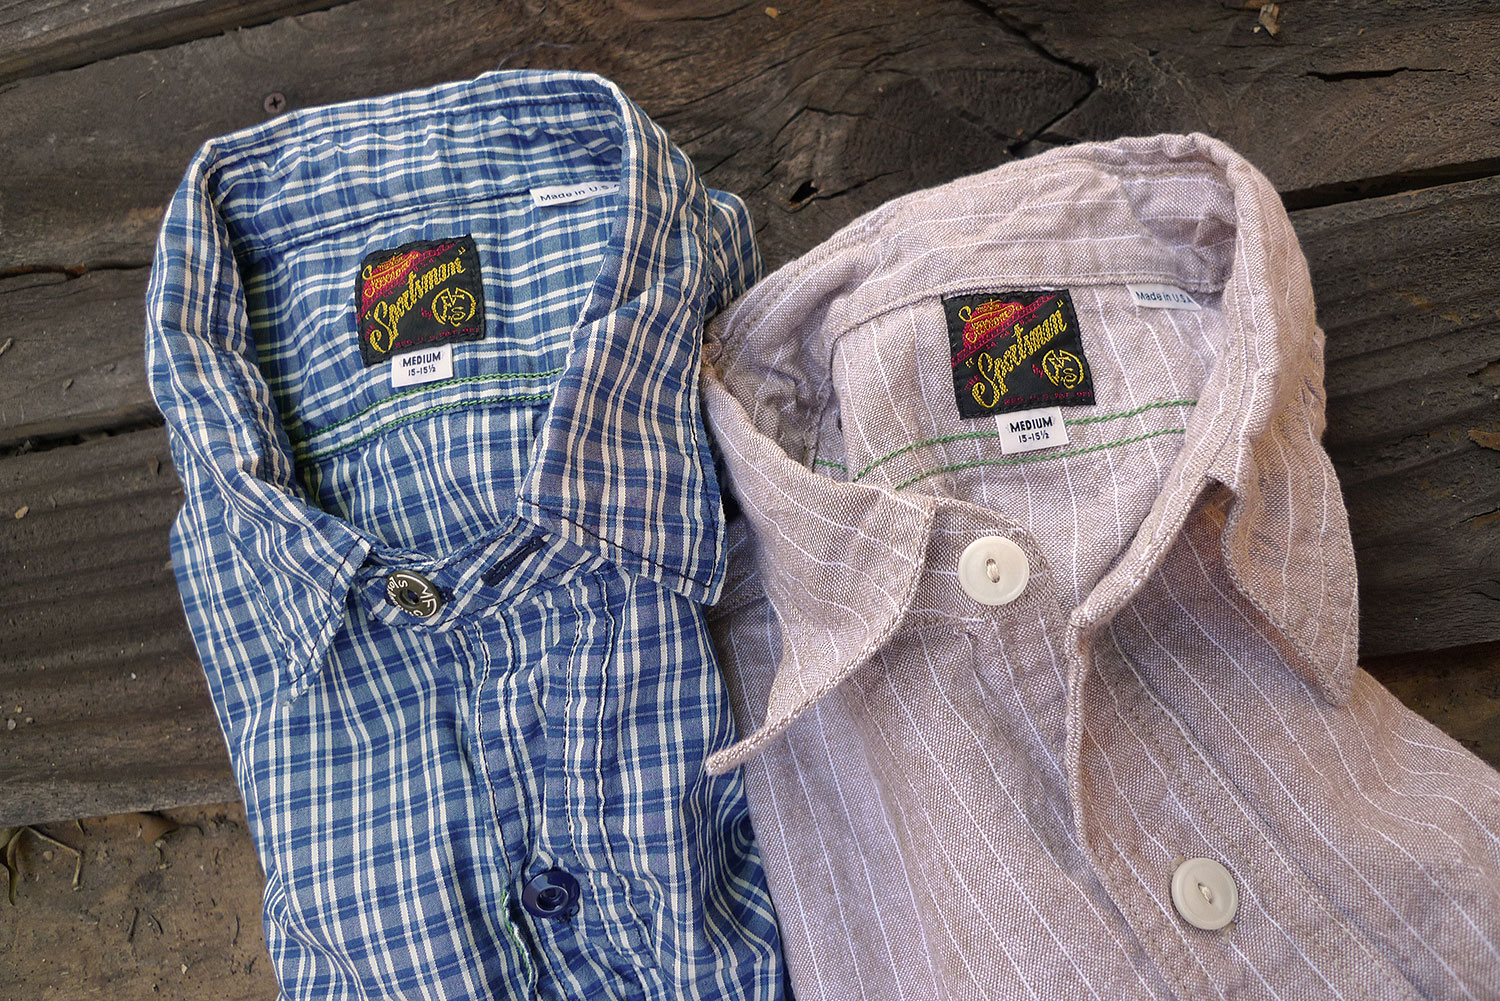 2e7b4943f2 Workman Shirt in NOS stripe cotton-linen chambray & Sportsman Shirt in NOS  woven check, Sportsman catalog Spring 2017, made in USA.